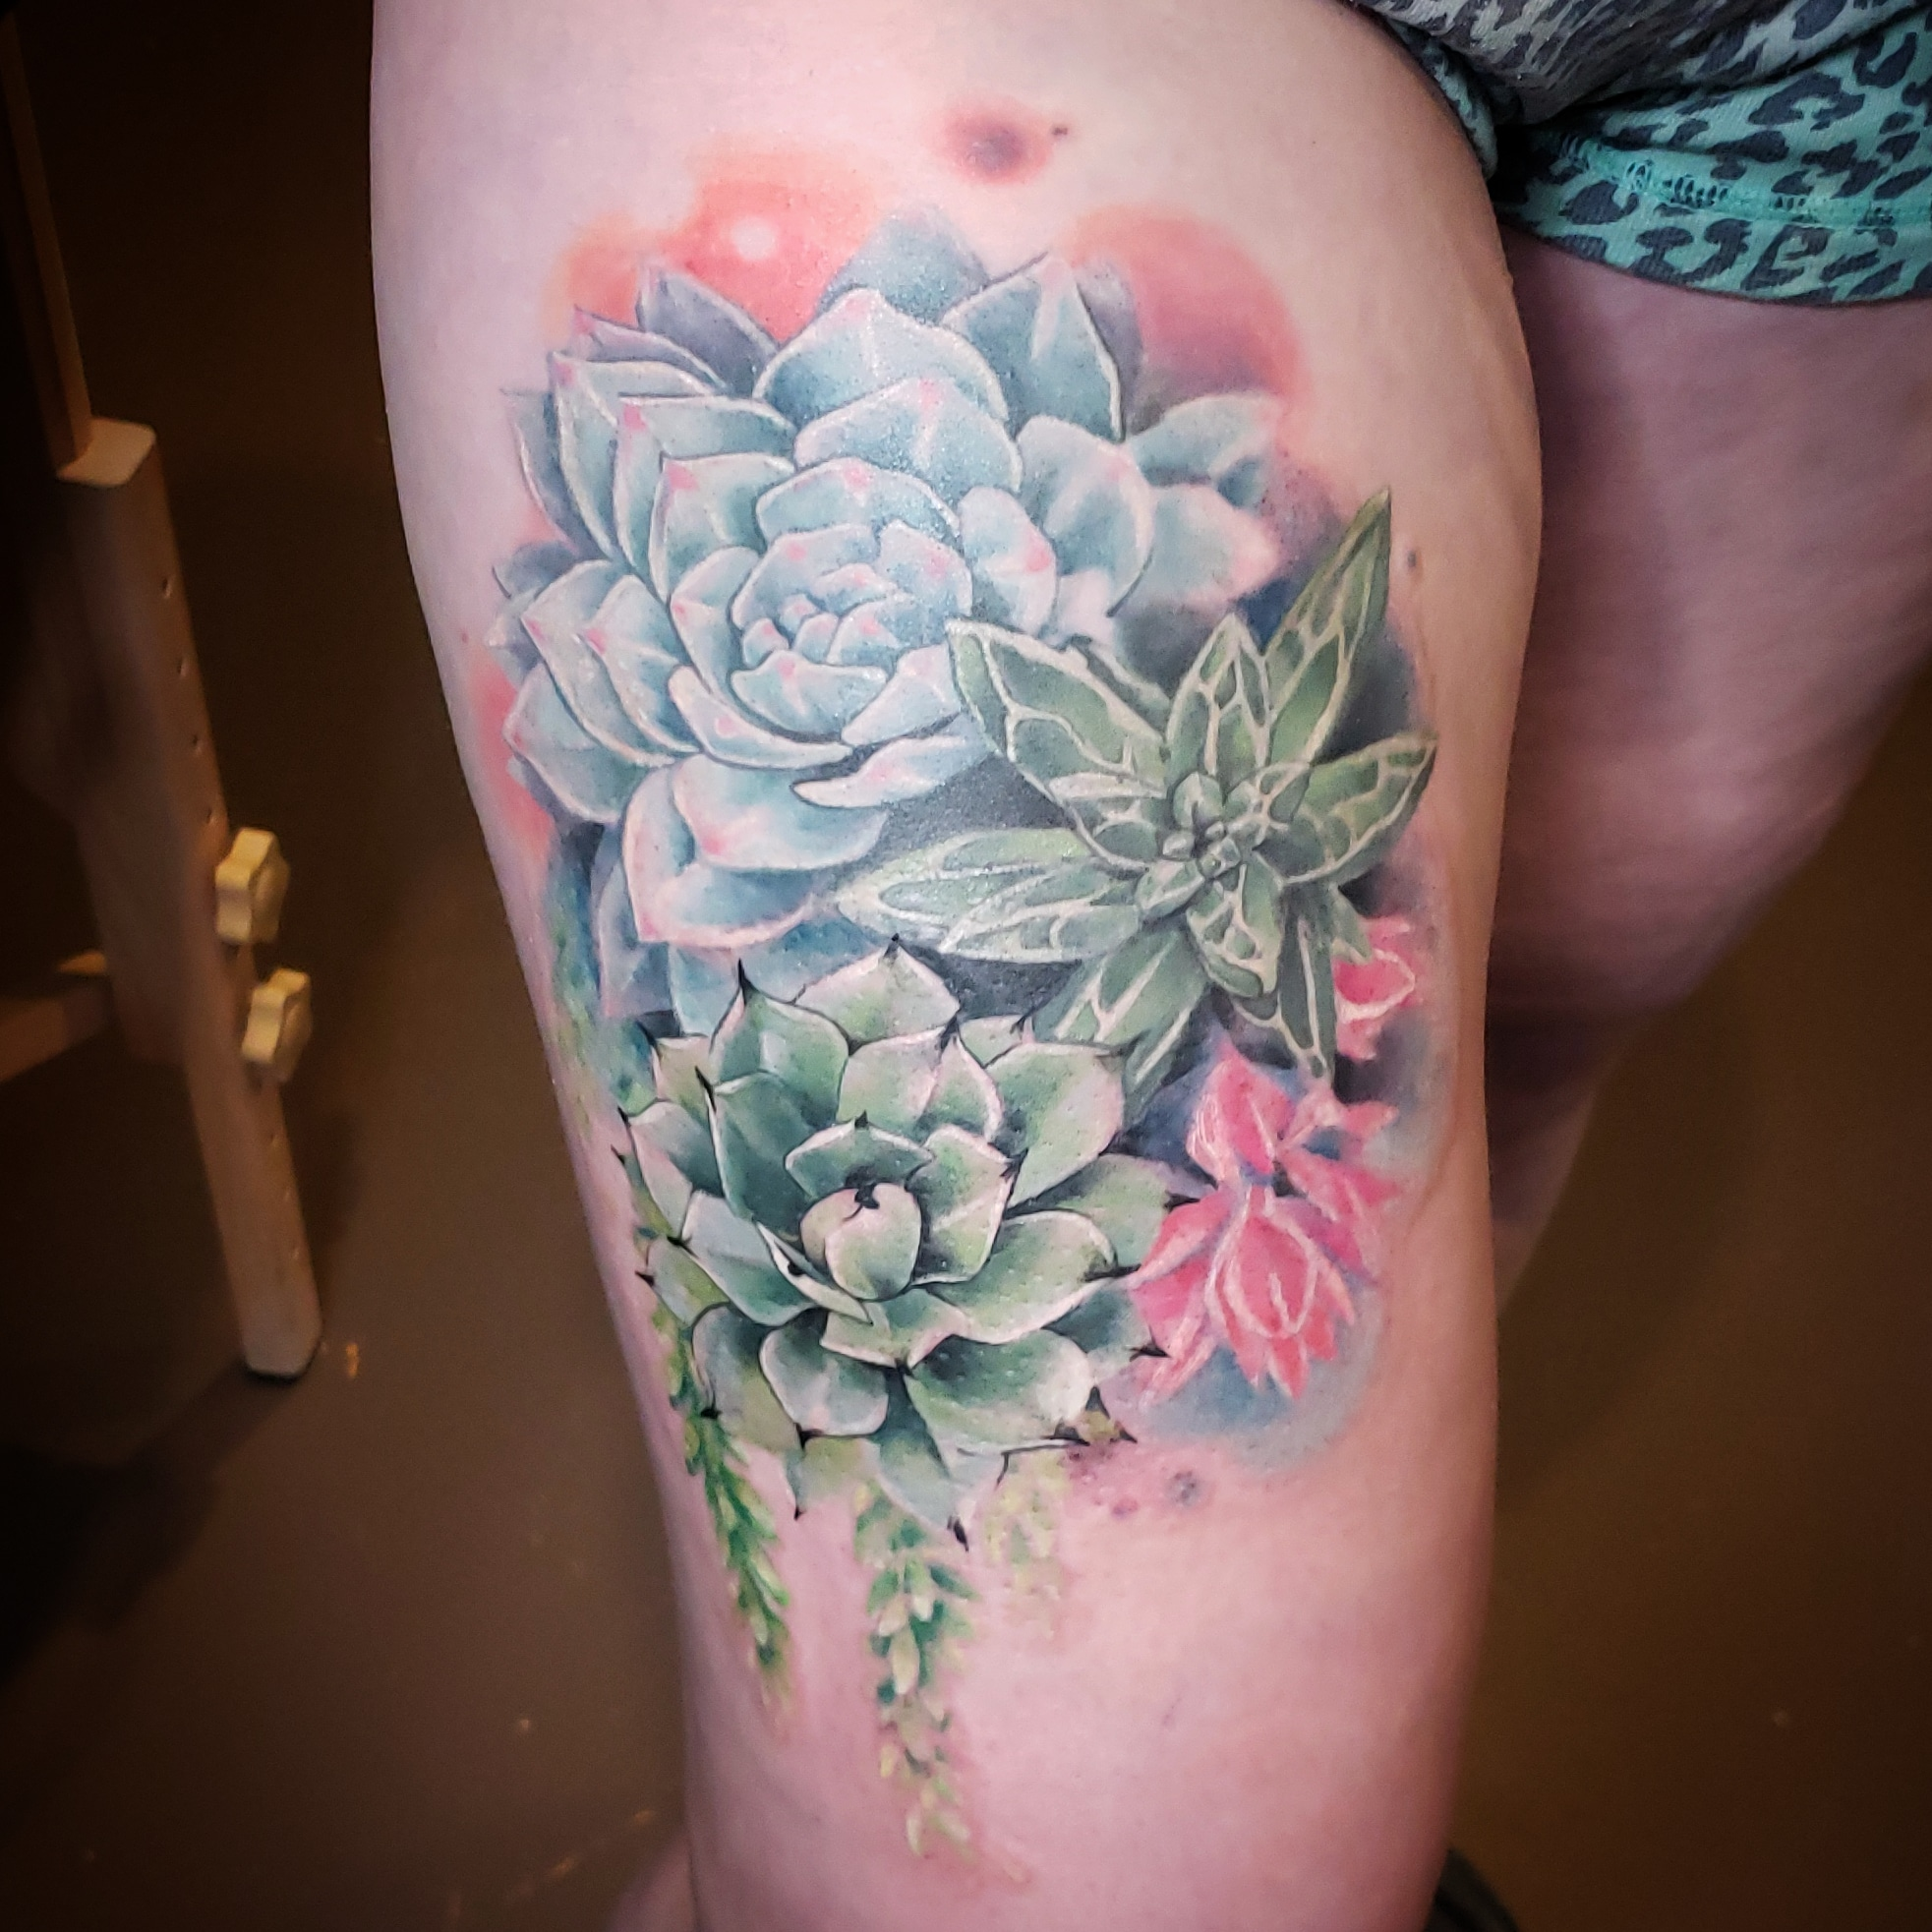 Jeska Rabbit Tattoo 2019 Okanagan Tattoo Show & Brewfest Artist